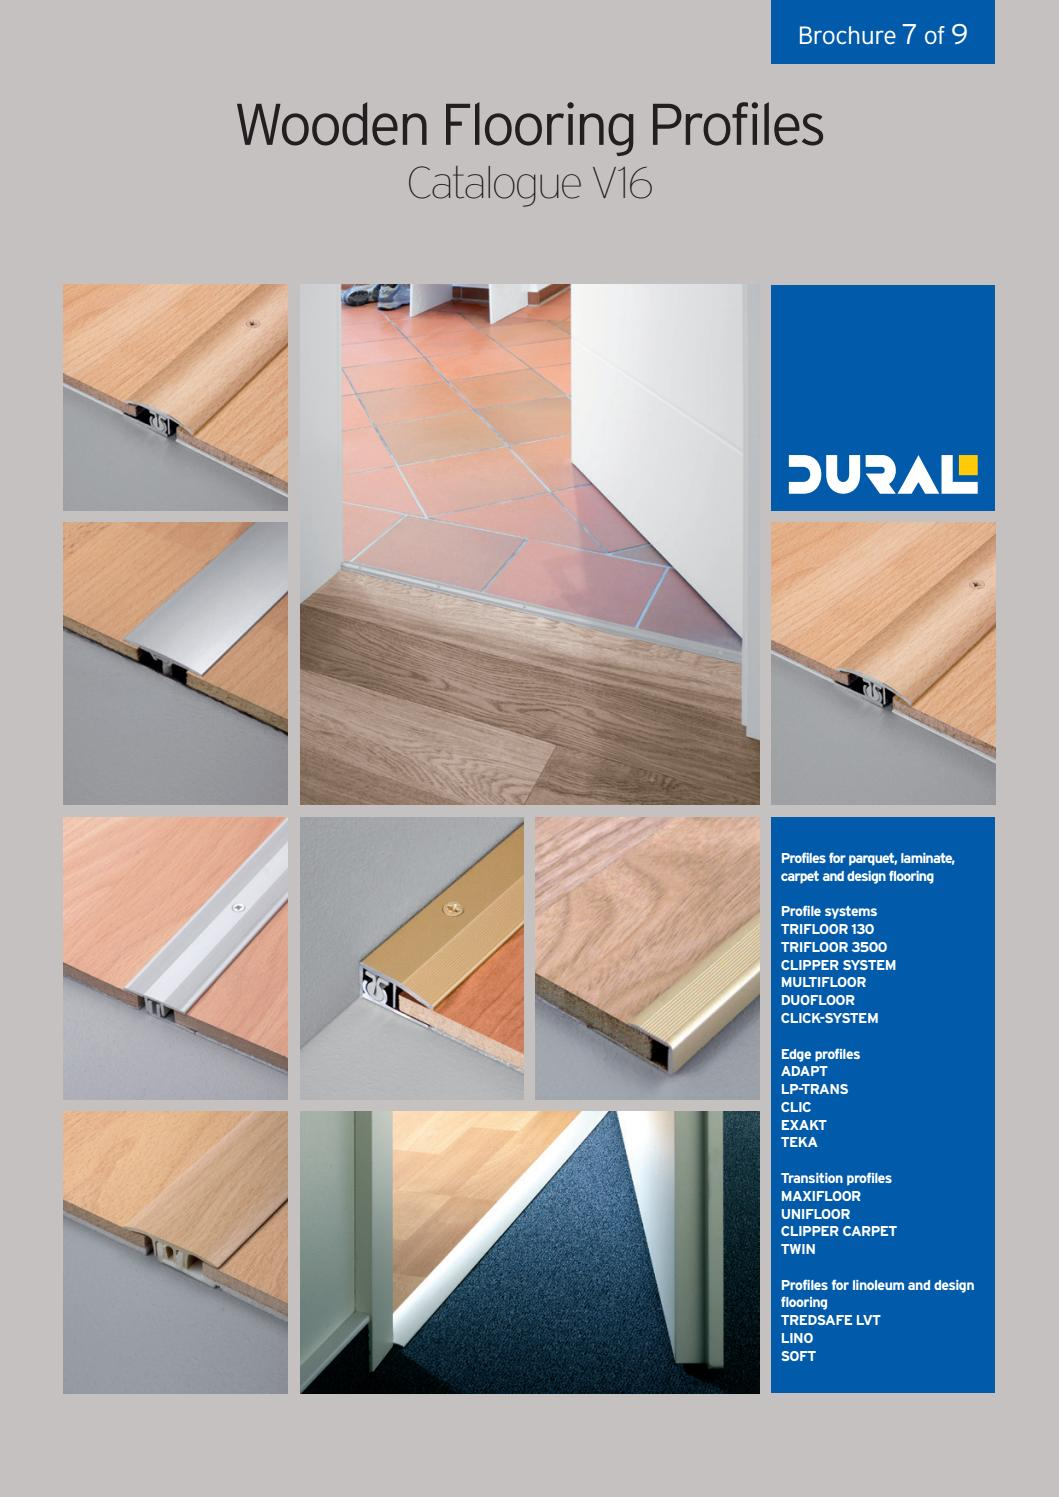 Wooden flooring profiles catalogue v16 by ctc issuu for Floor profile